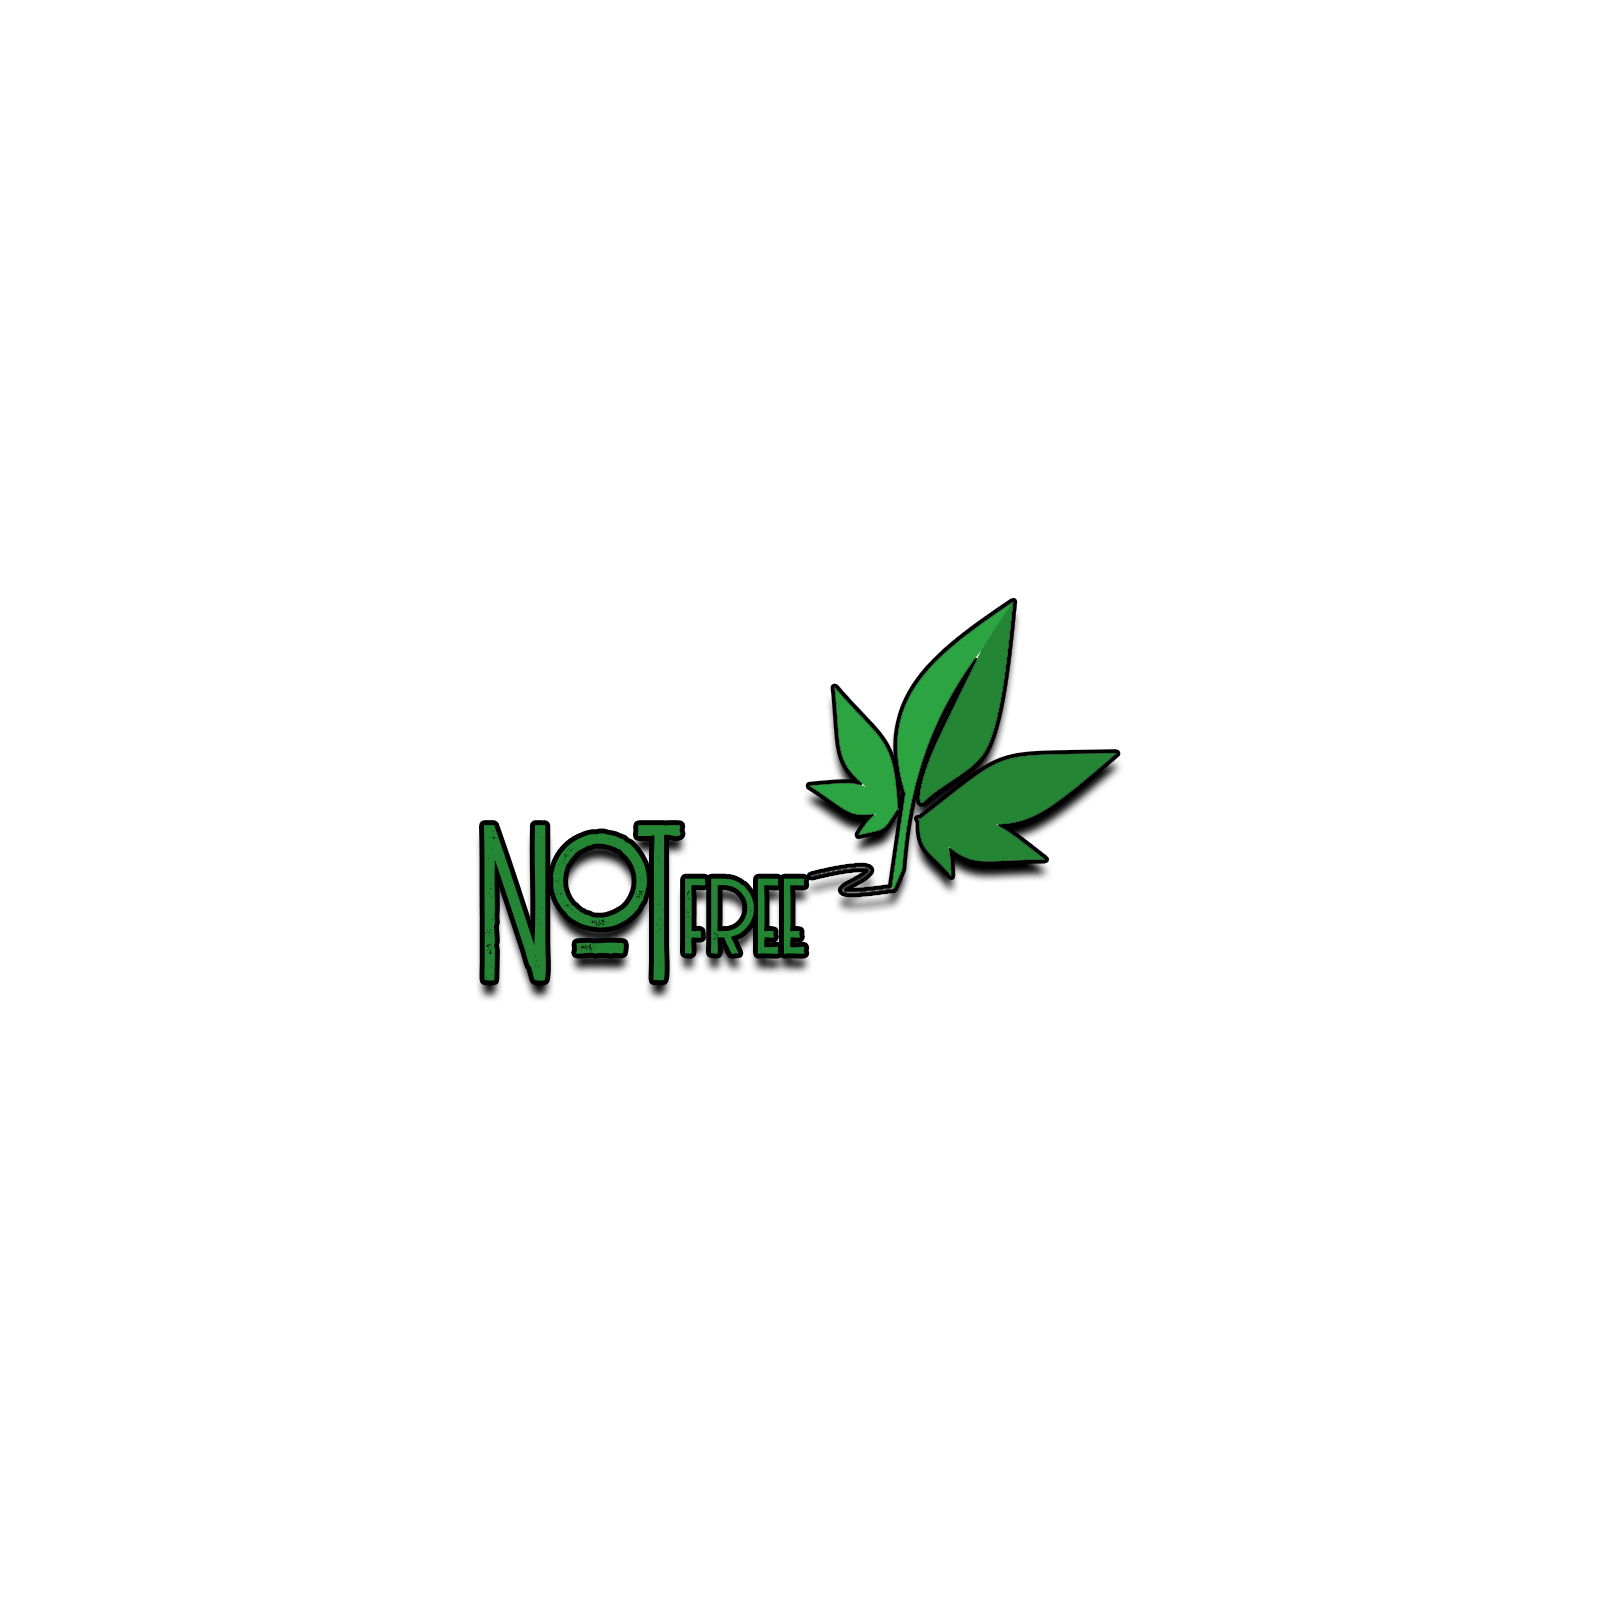 NOTFREE GLOW PNG.png